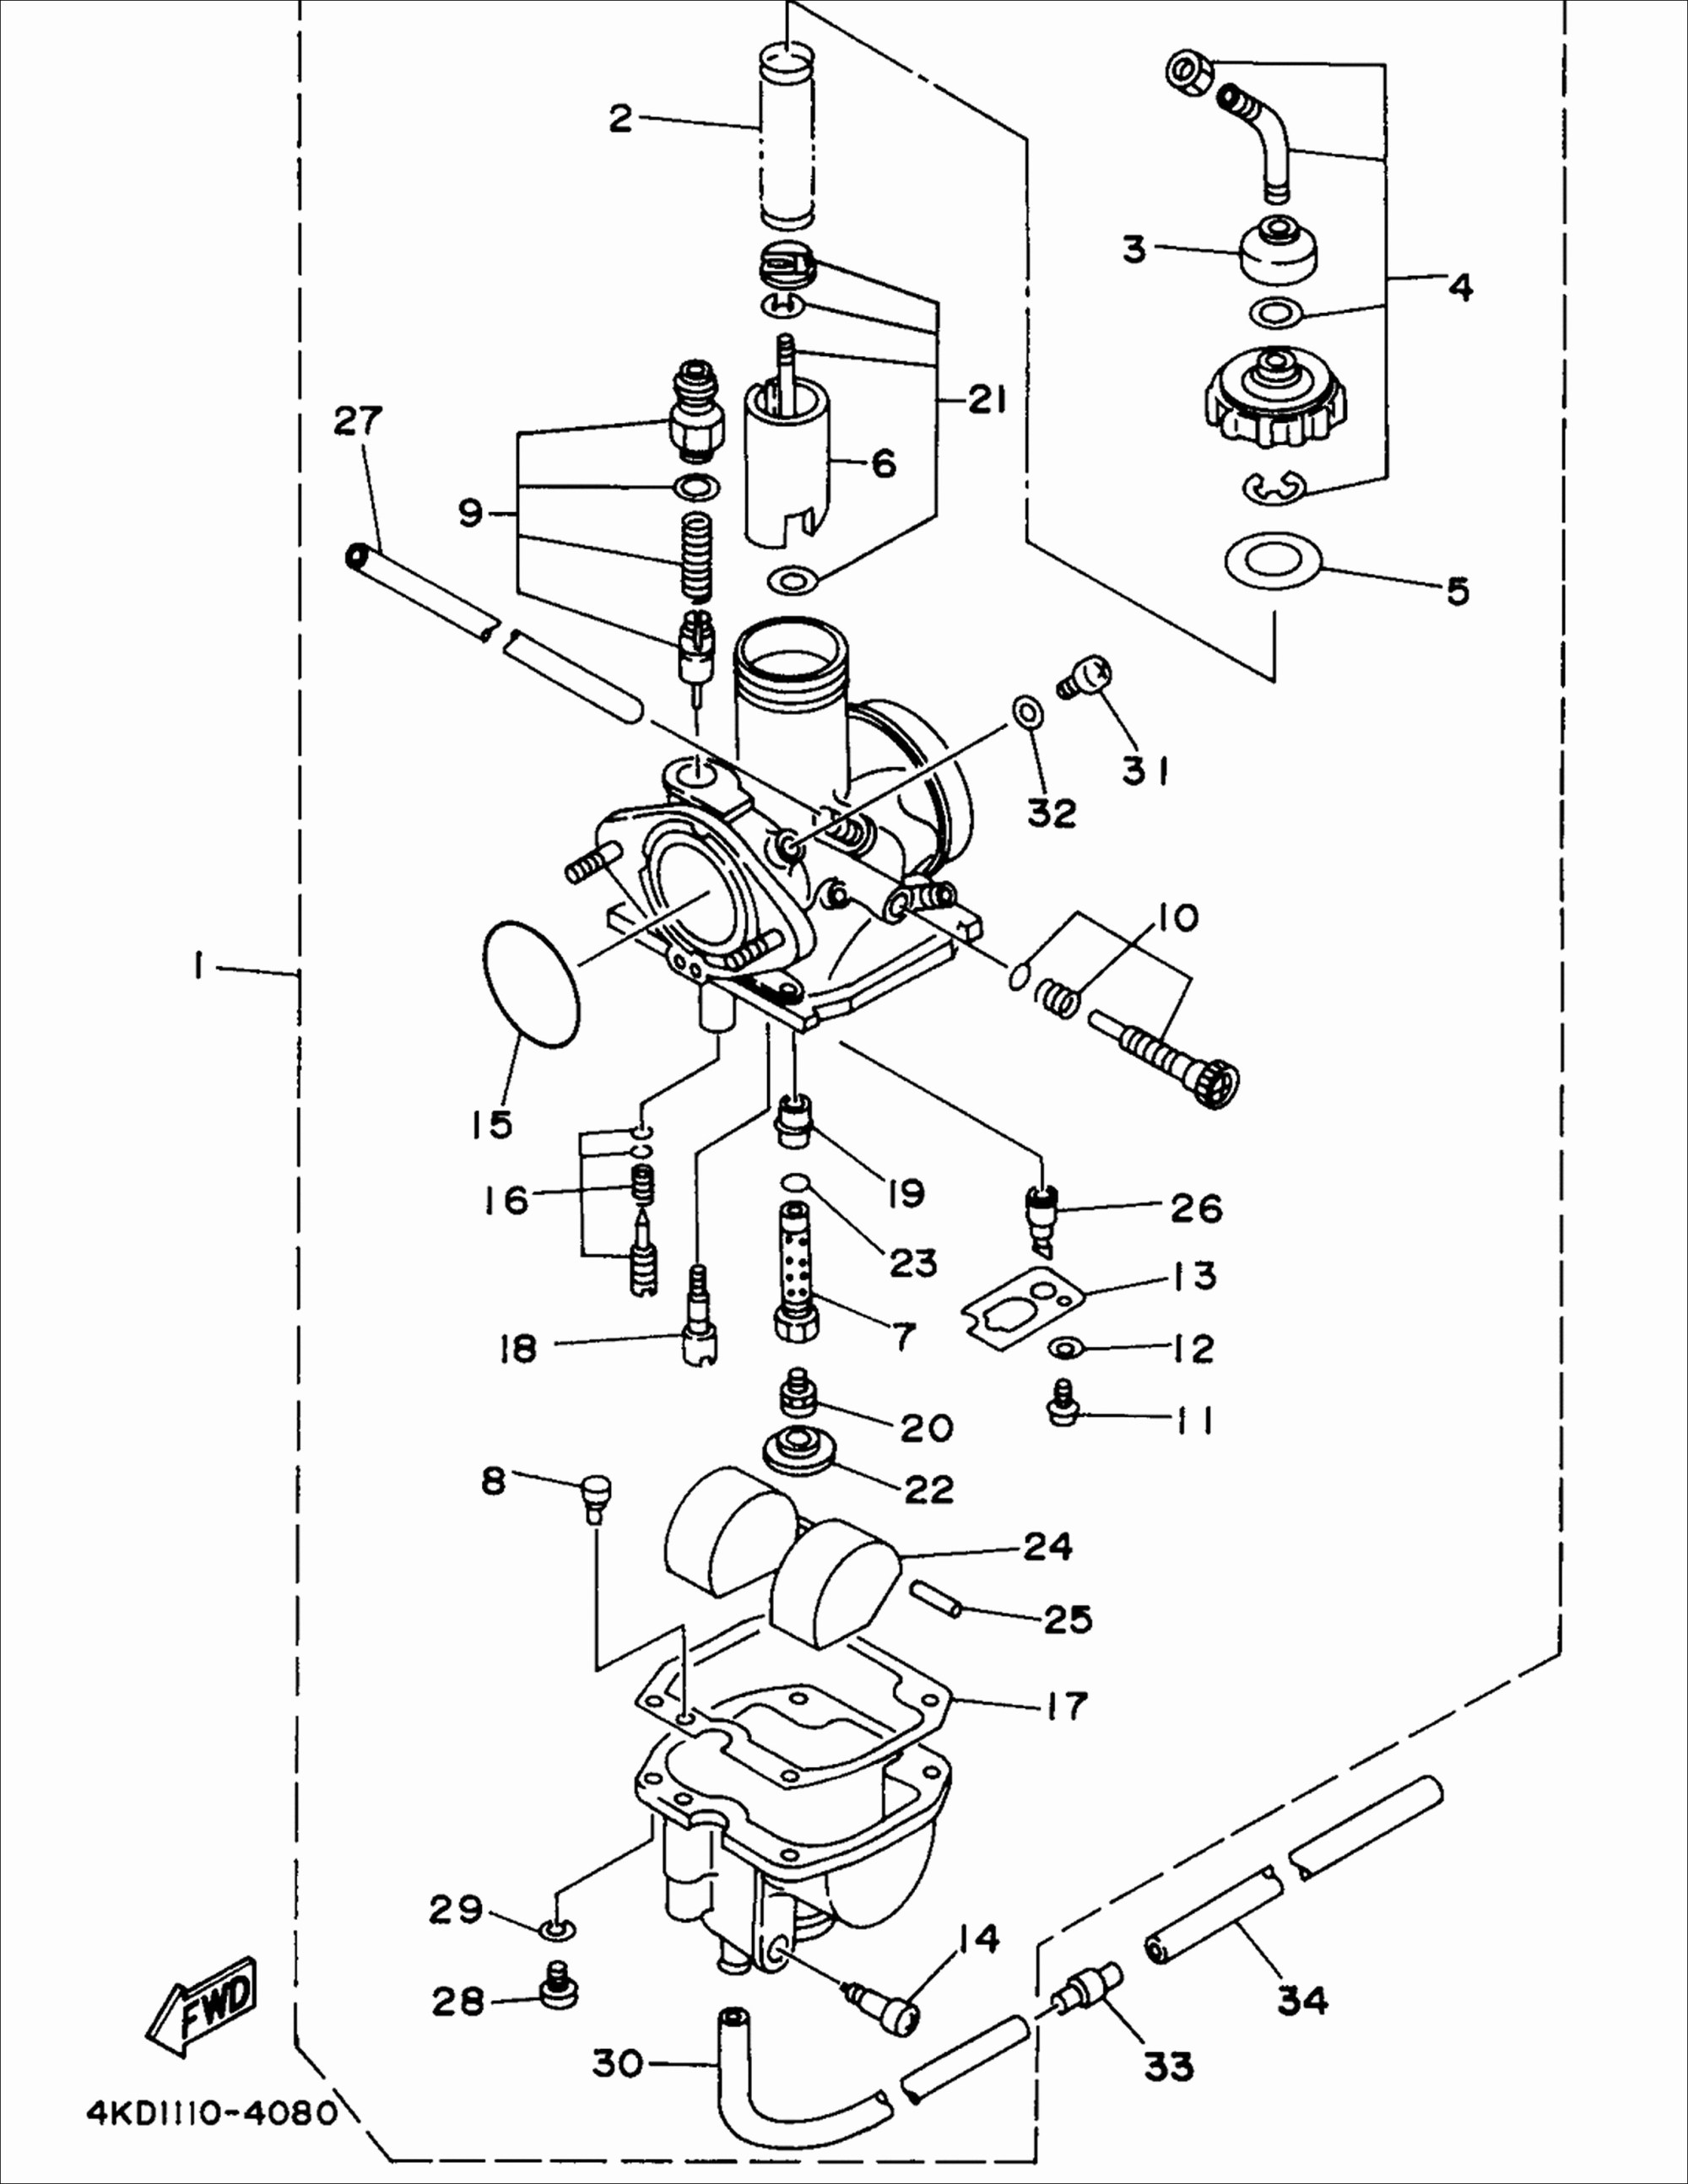 hight resolution of mitsubishi 30 engine diagram wiring diagram name in addition engine turbo system on 3 8 mitsubishi v6 engine diagram